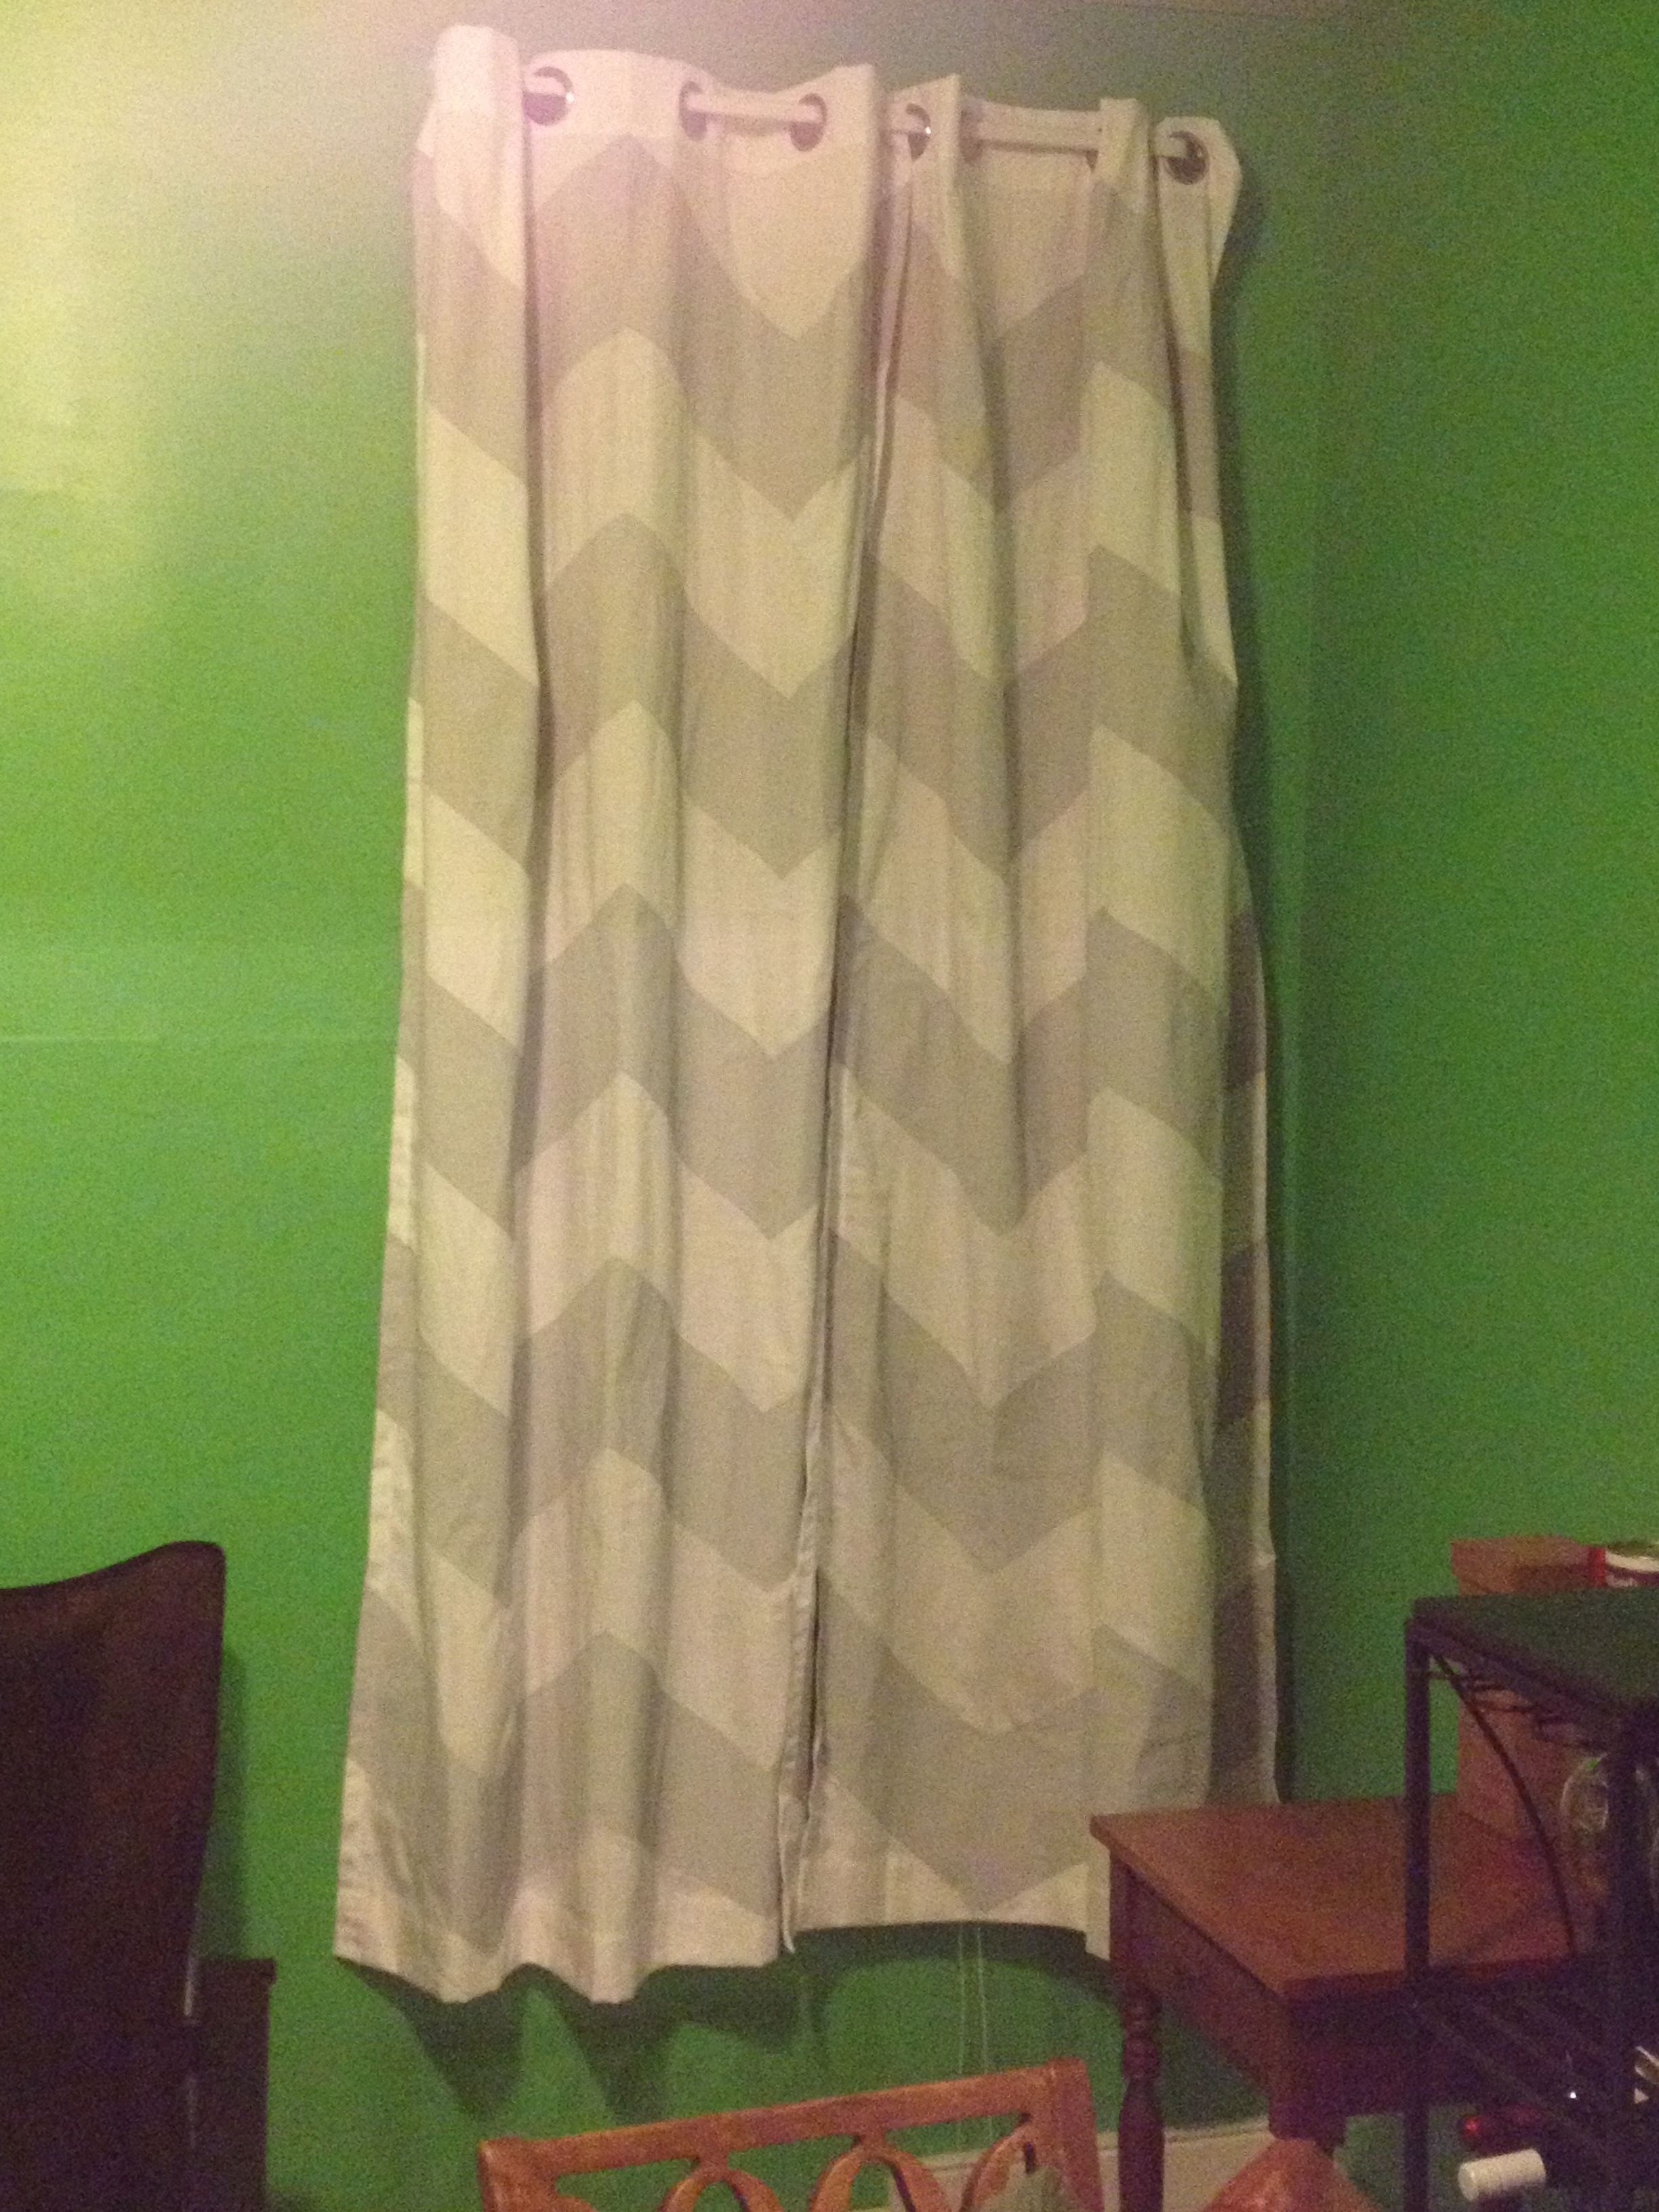 chevron curtains in green with green wall and wooden chair